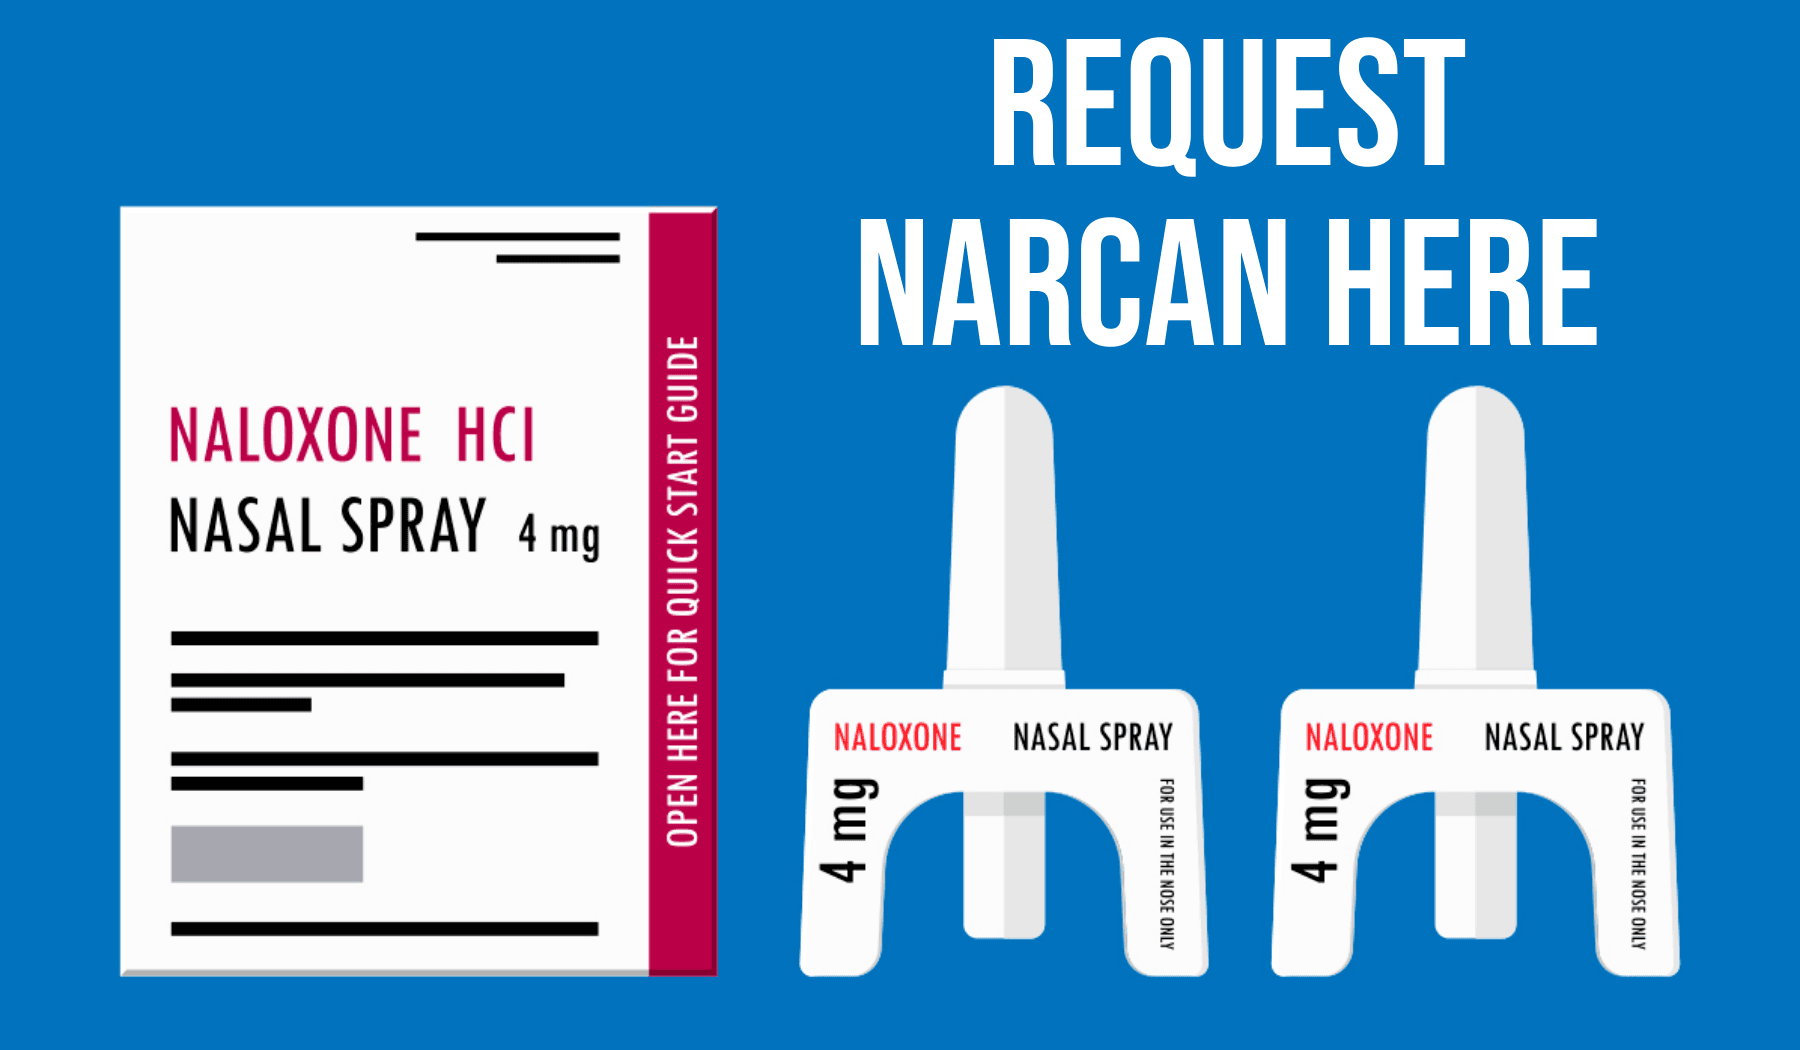 Image of Request Narcan